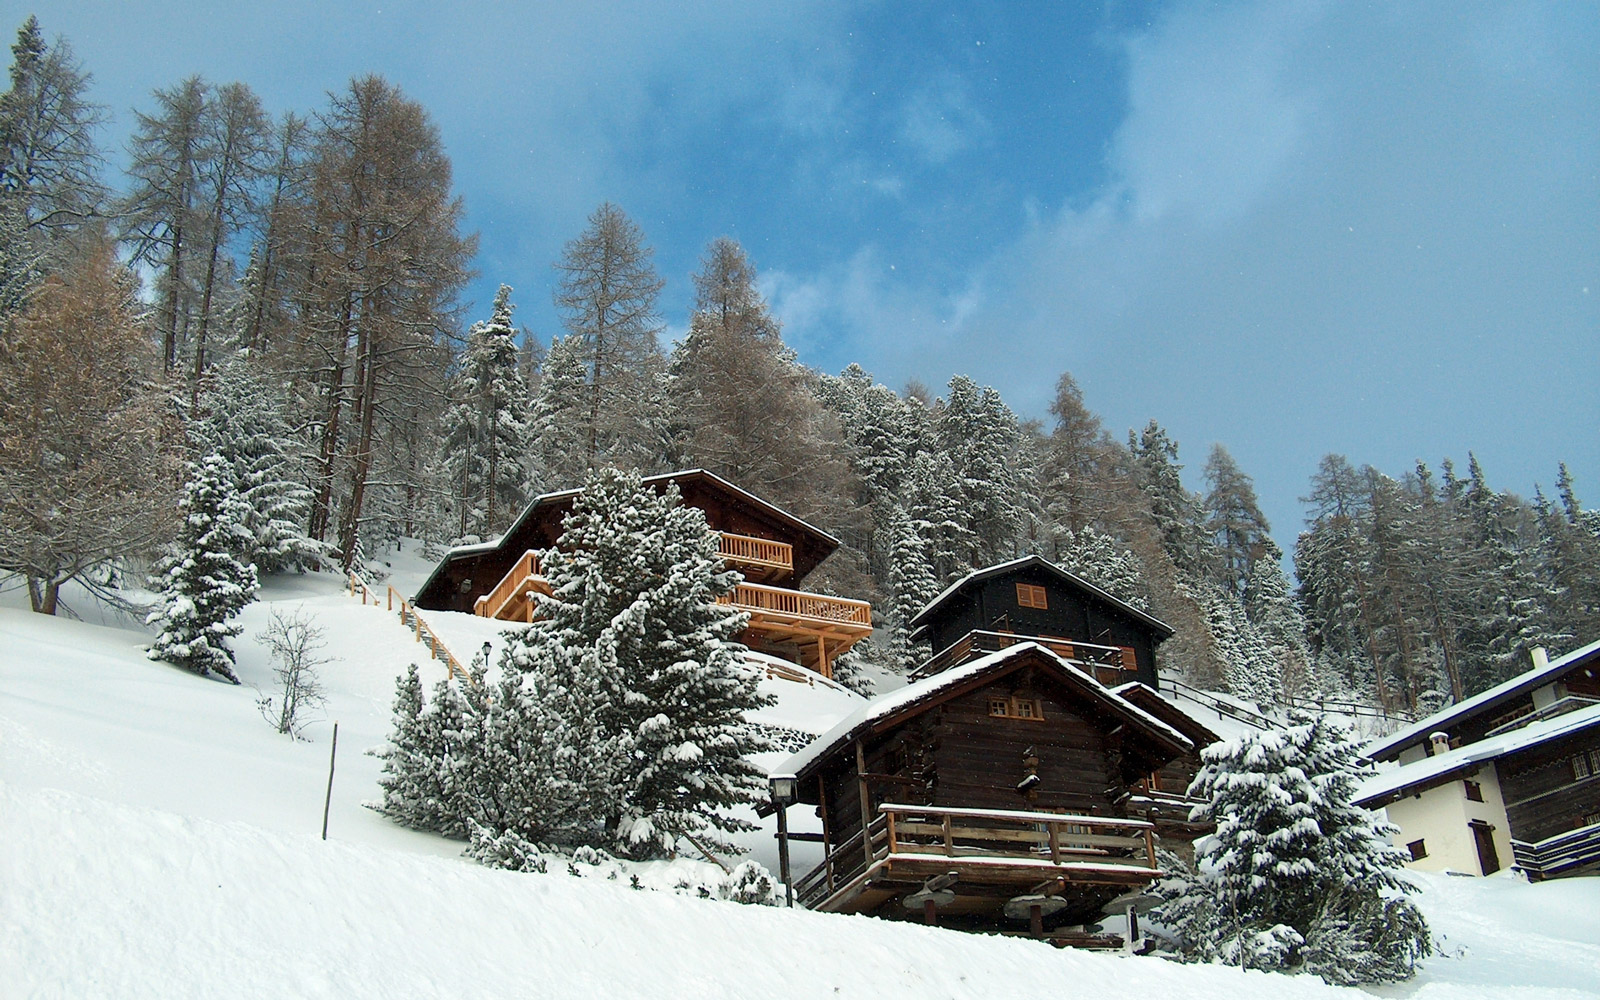 Some chalets (cottages) in the village of Chandolin (swiss alps).